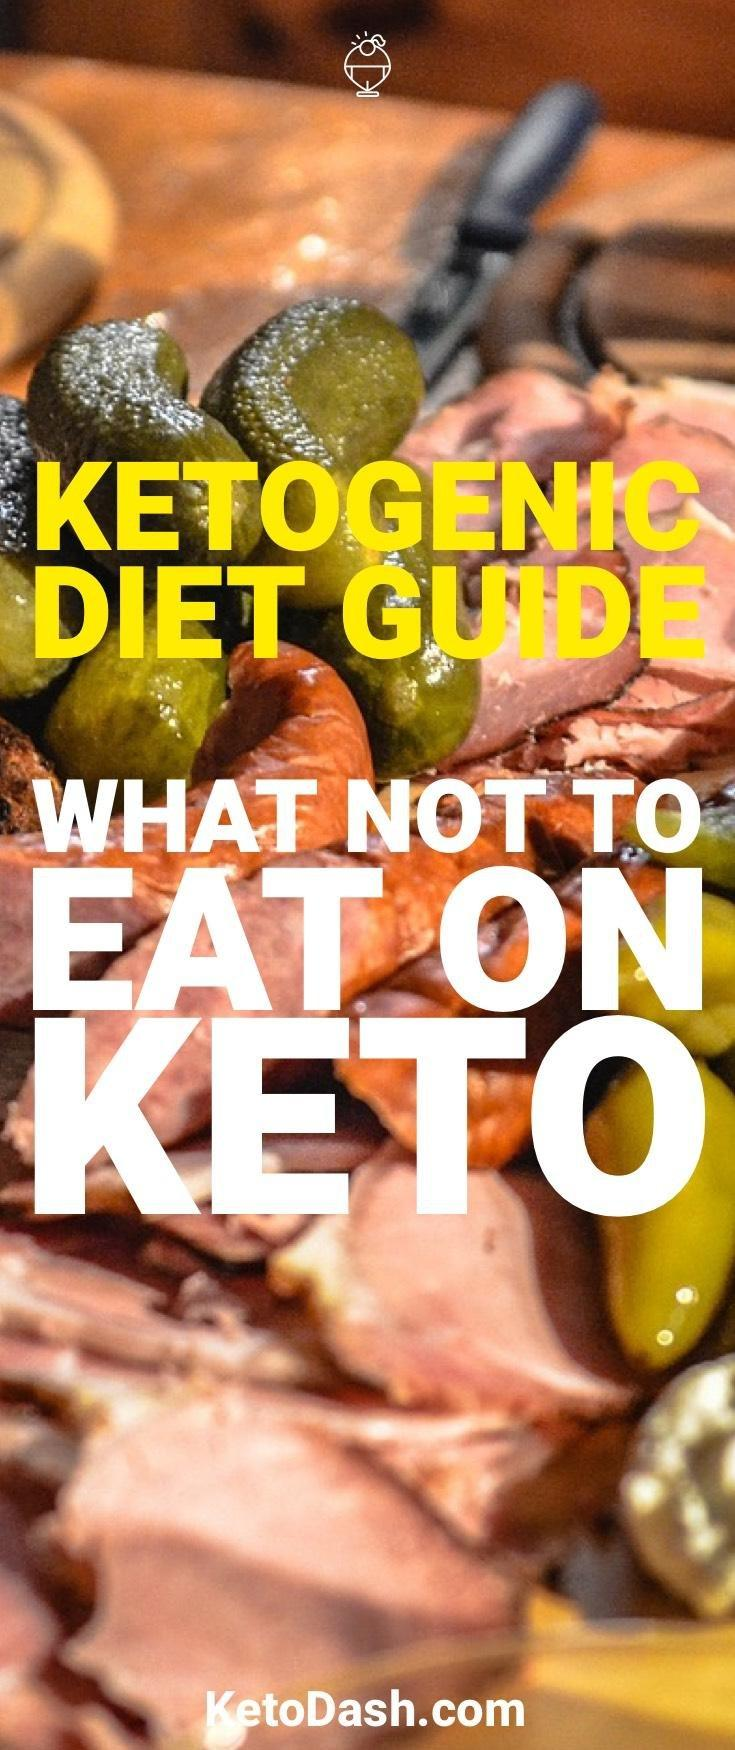 What Can I Eat To Get Into Ketosis?